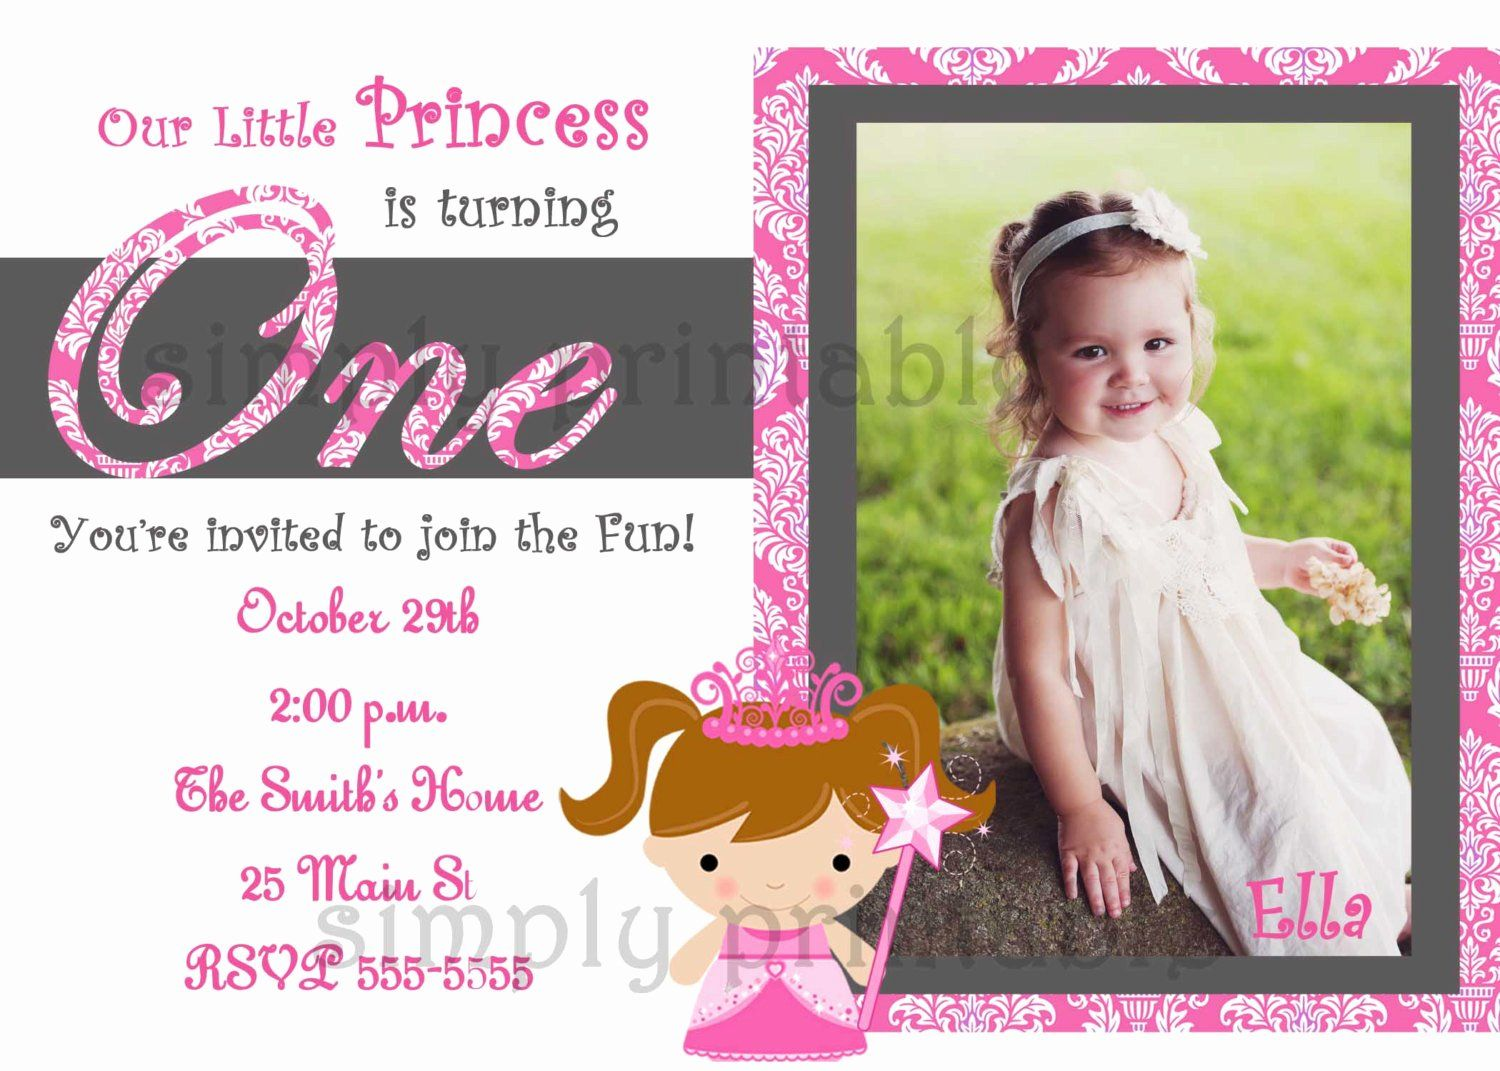 Baby Girl First Birthday Invitation Luxury 1st Birthday Party Invitations Template 1st Birthday Invitations Girl Birthday Invitations Girl Girl First Birthday